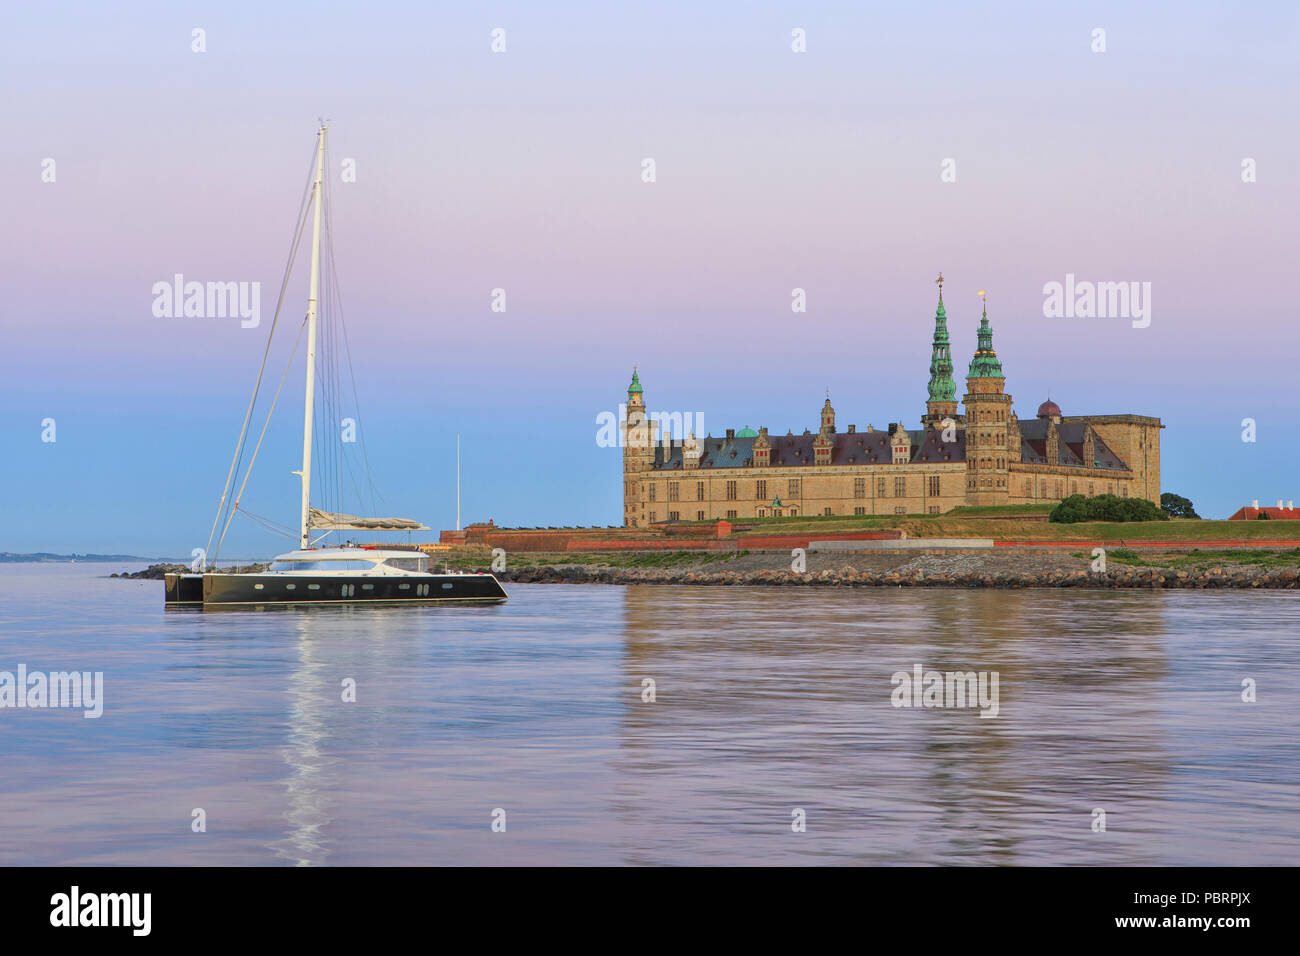 A catamaran for anchor at Kronborg Castle (a UNESCO World Heritage Site since 2000) at dusk in Helsingor, Denmark - Stock Image